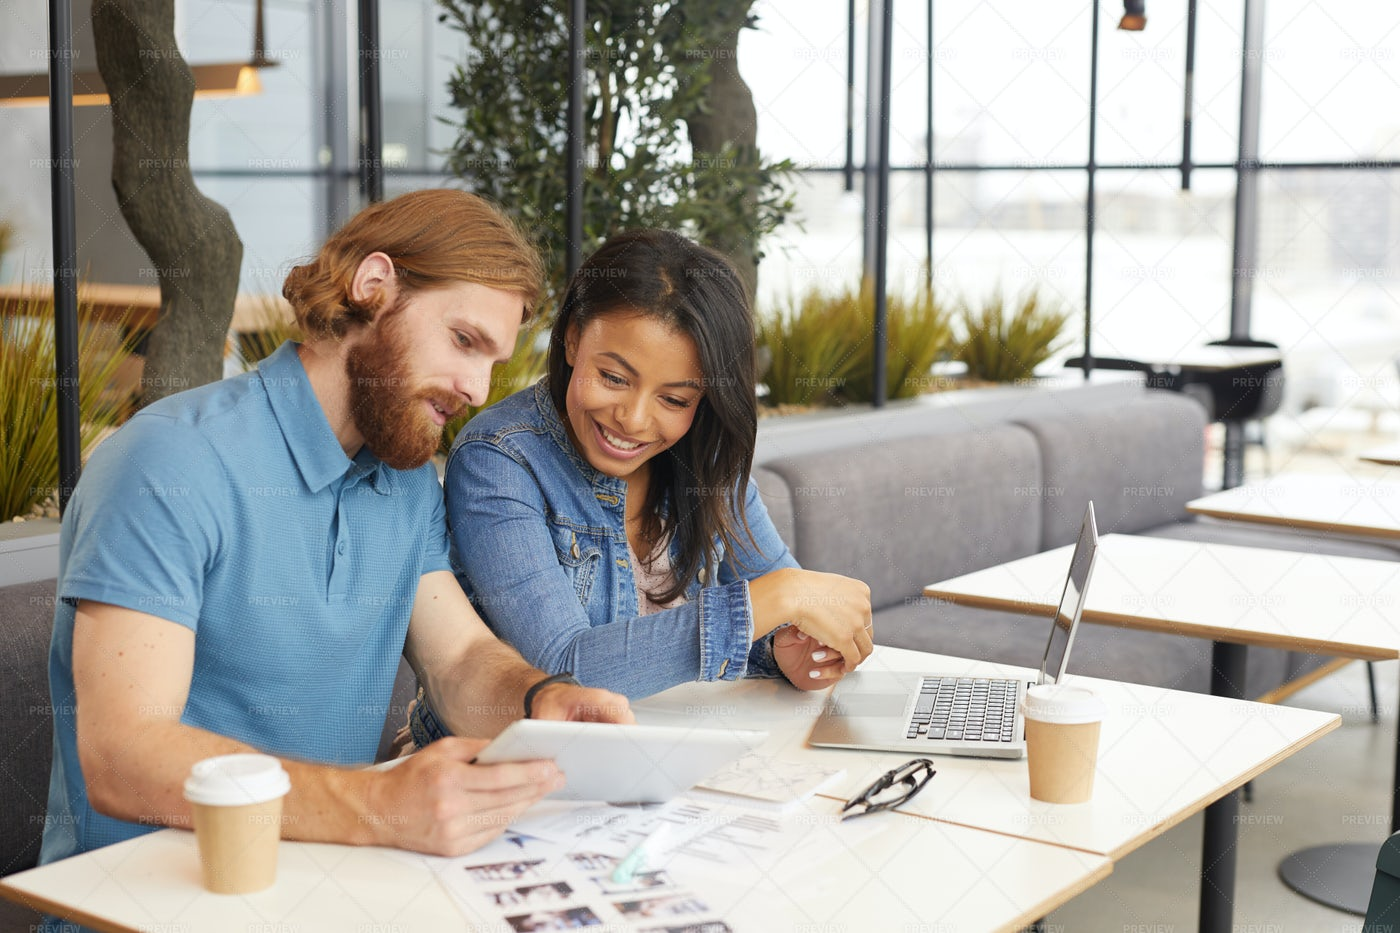 Business Discussion In A Cafe: Stock Photos